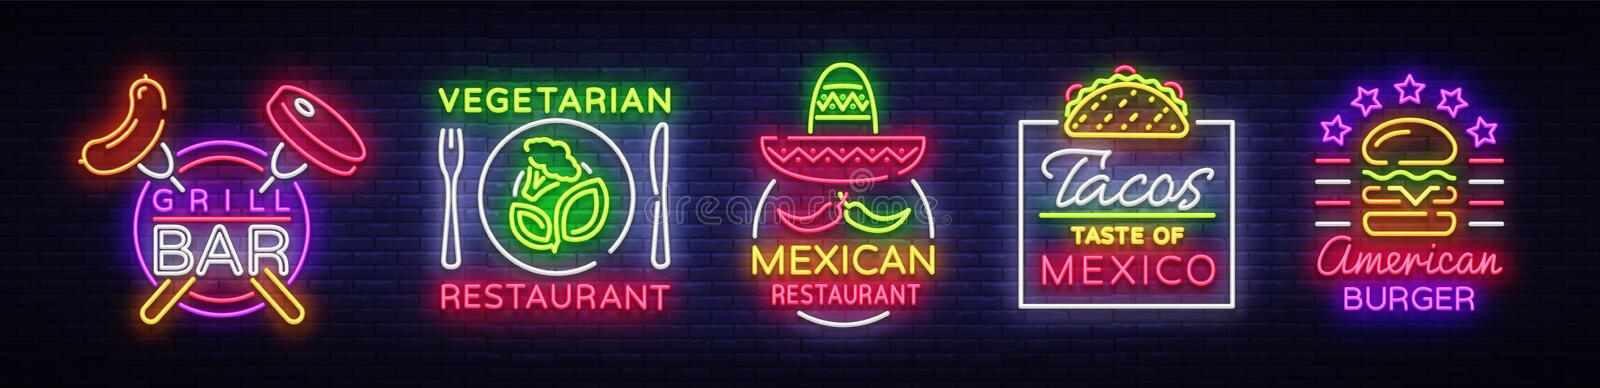 Bright neon symbols for food. Collection Design Elements, Neon Signs for Food, Grill Bar, Vegetarian Food, Mexican vector illustration